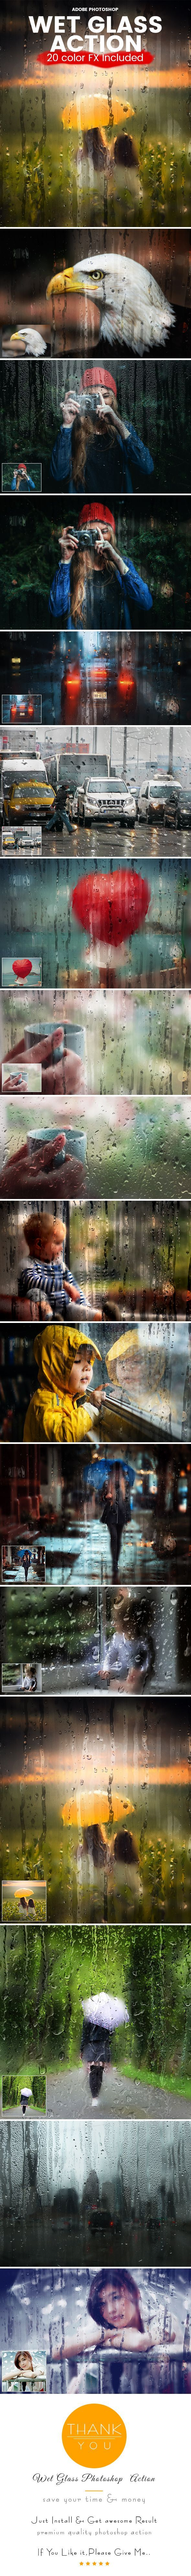 Wet Glass Photoshop Action — Photoshop ATN #effects #rainy day • Available here ➝ https://graphicriver.net/item/wet-glass-photoshop-action/20614835?ref=pxcr